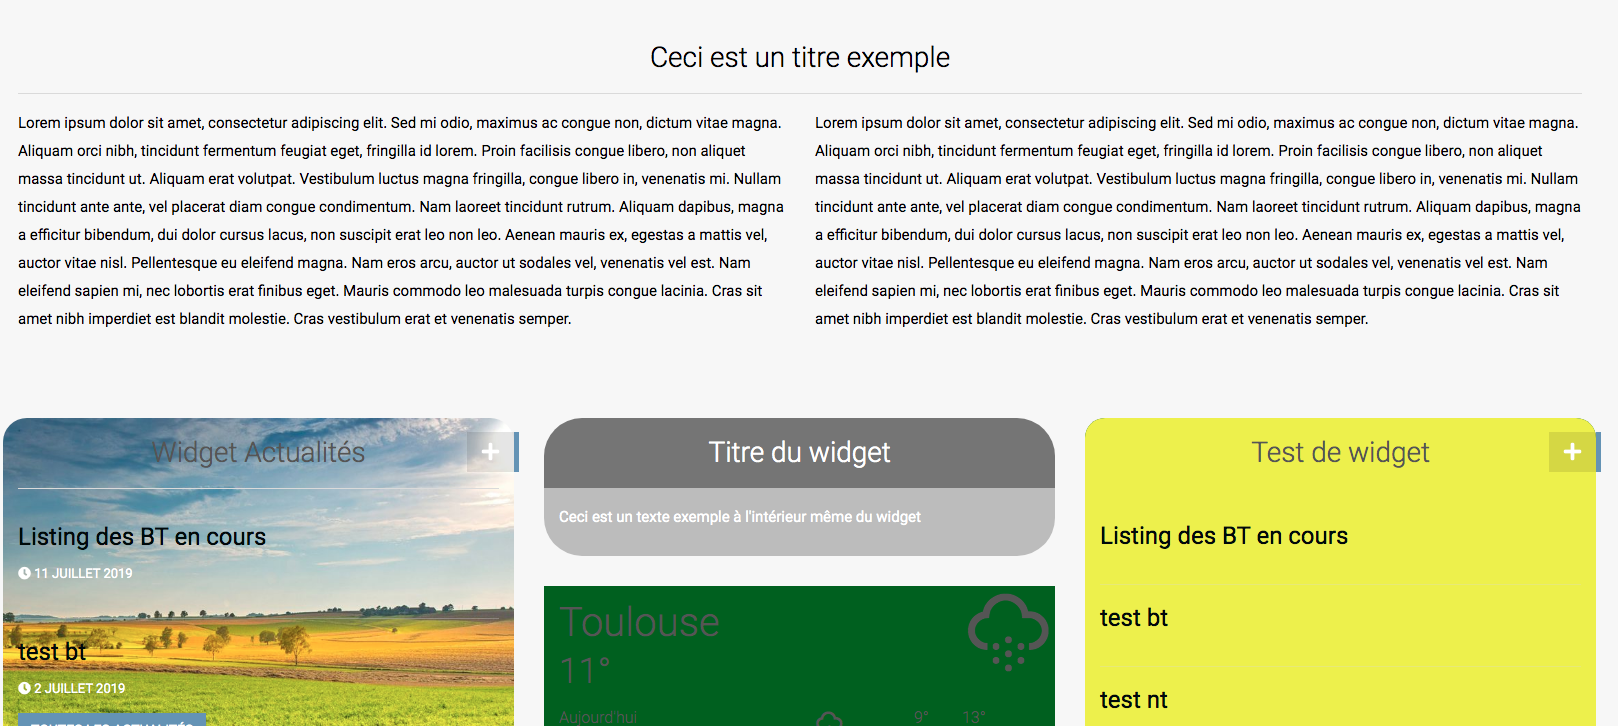 personnaliser-widget-sit-internet-wordpress